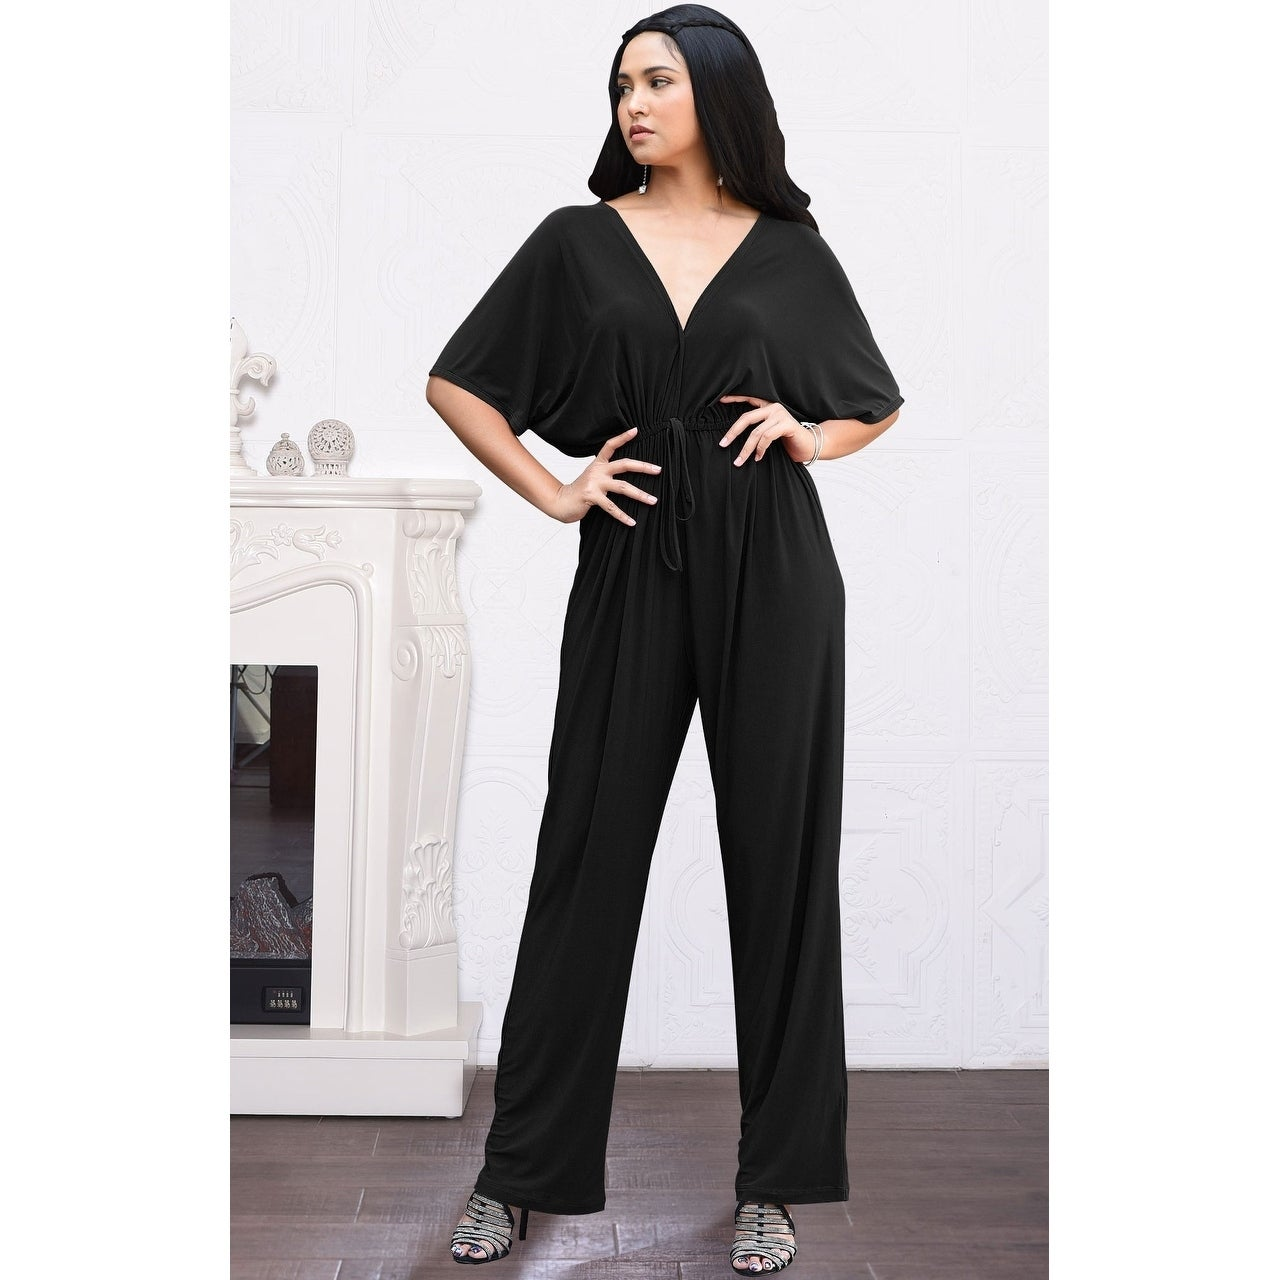 8a4415755e5 Shop KOH KOH Long Pant Suit Short Sleeve Casual V-neck Sexy Romper Jumpsuit  - Free Shipping Today - Overstock - 19436598